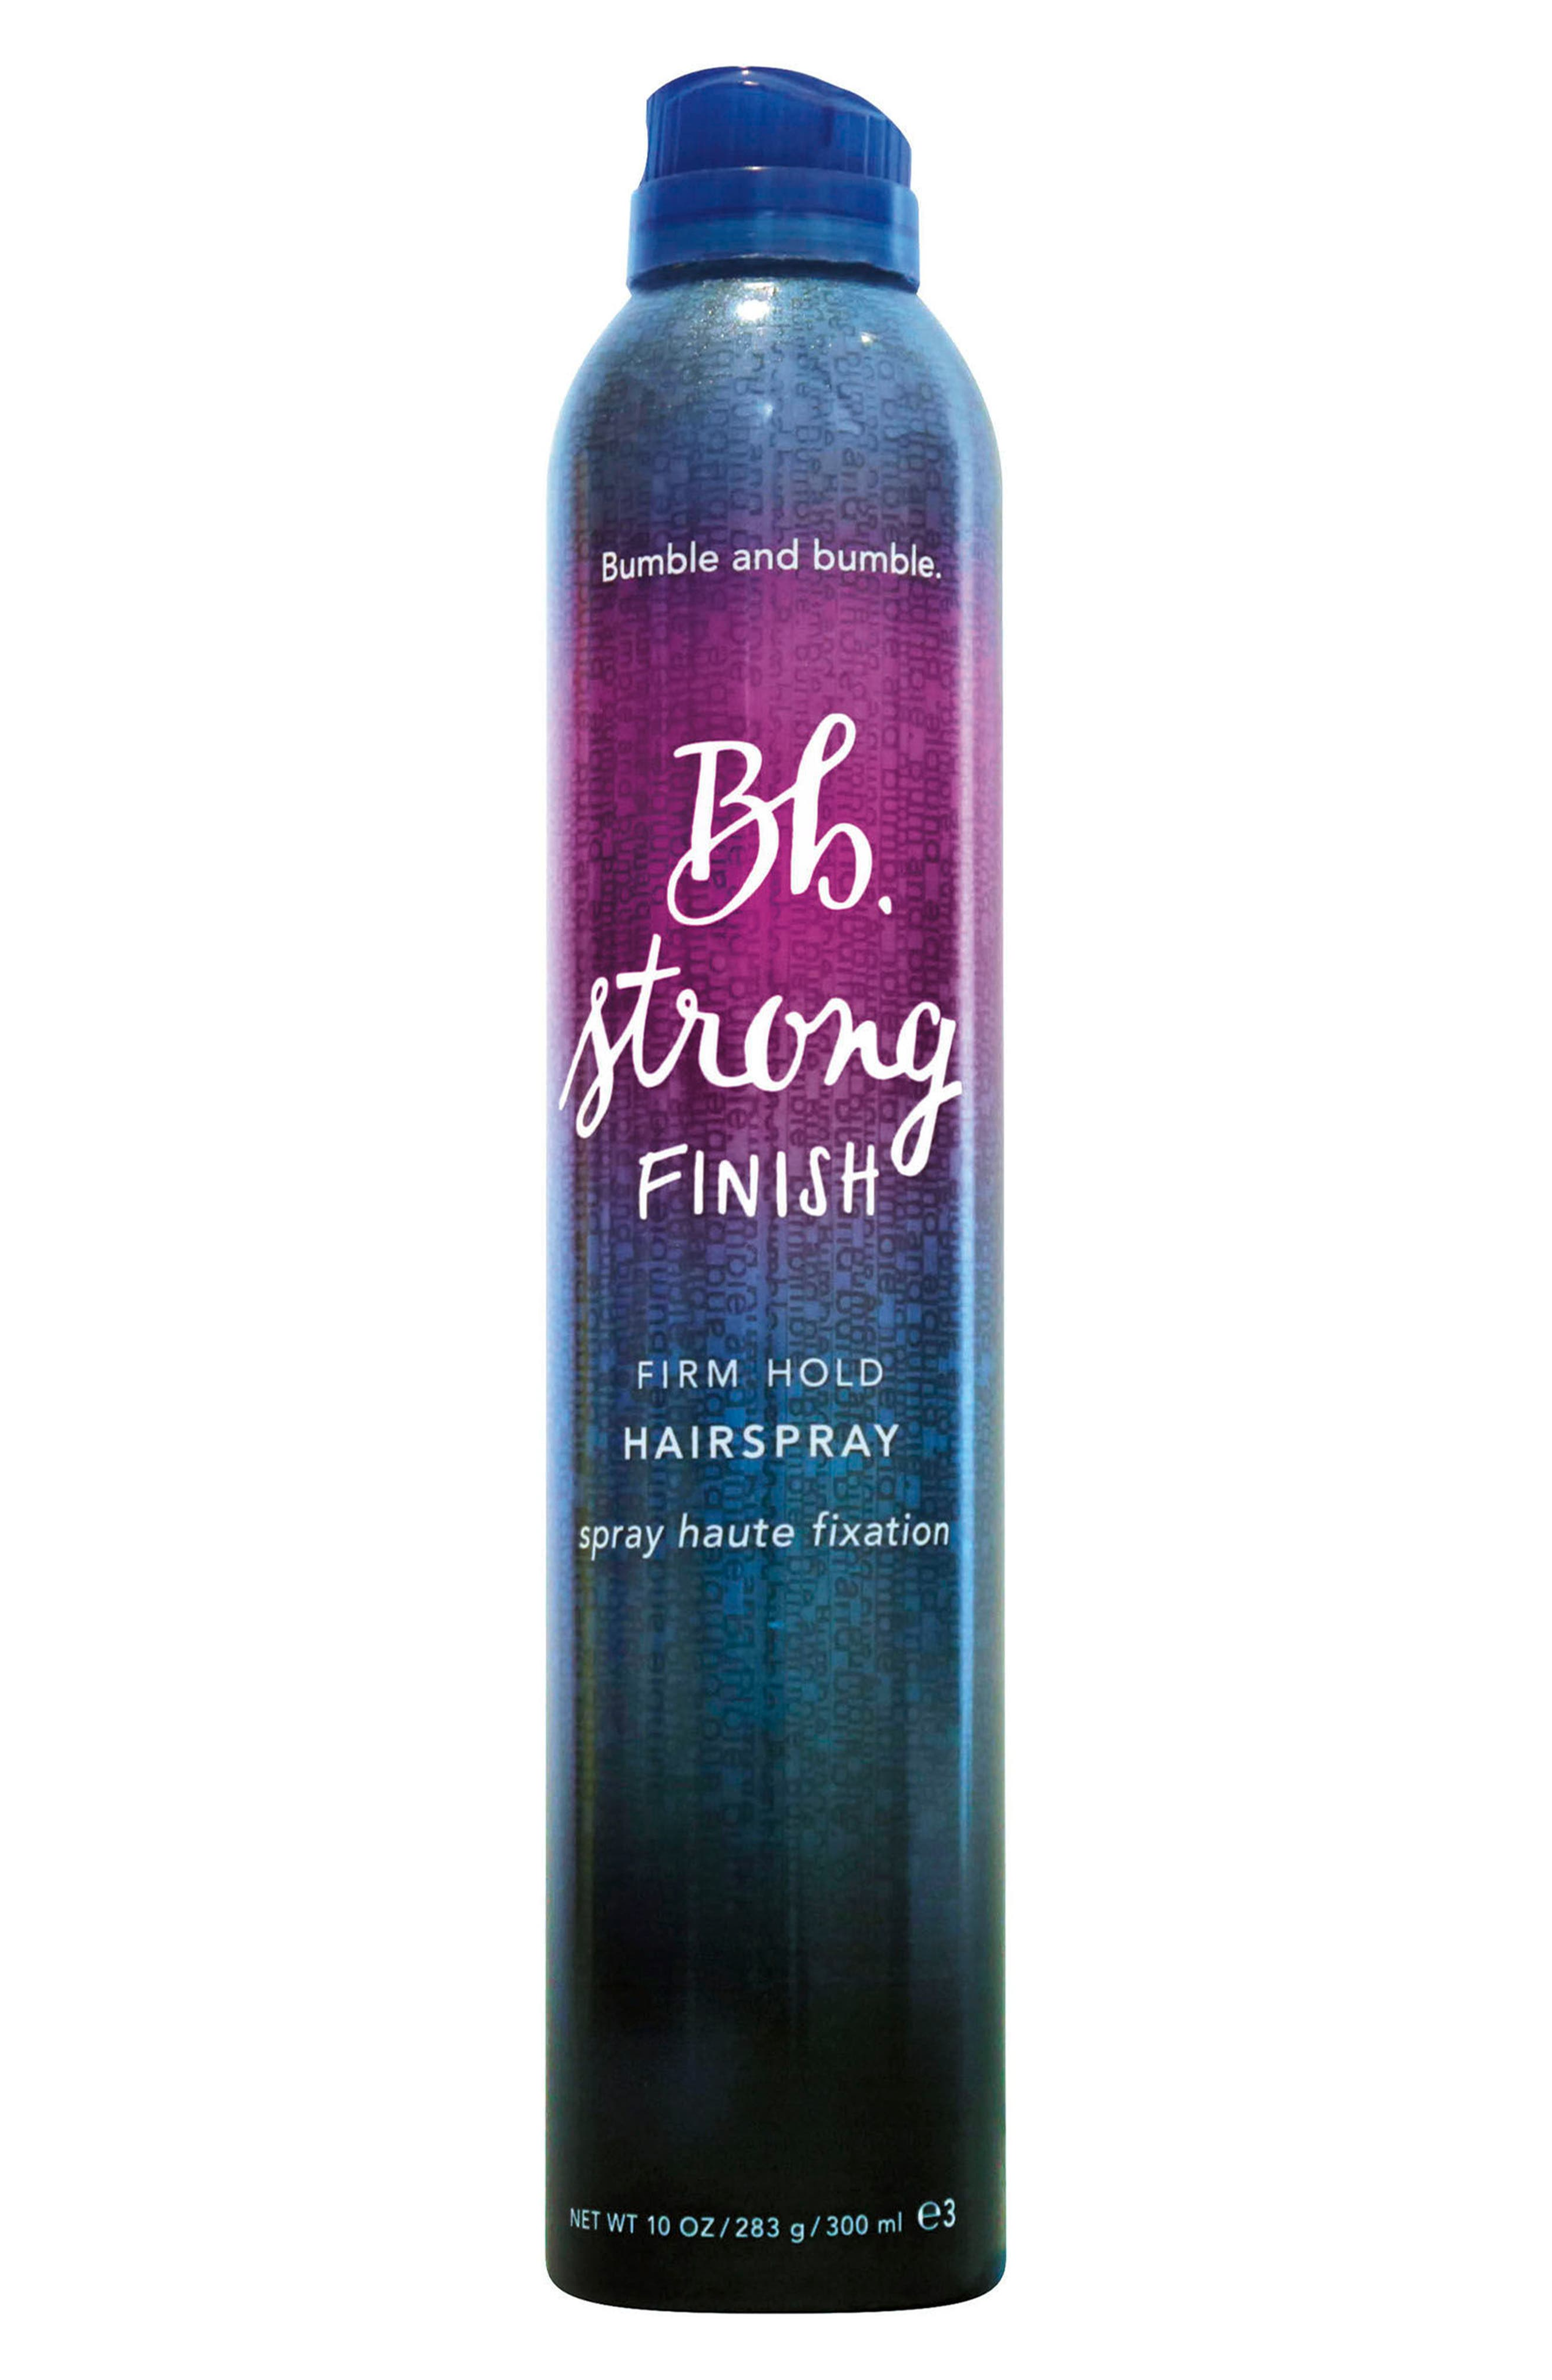 Main Image - Bumble and bumble Strong Finish Firm Hold Hairspray